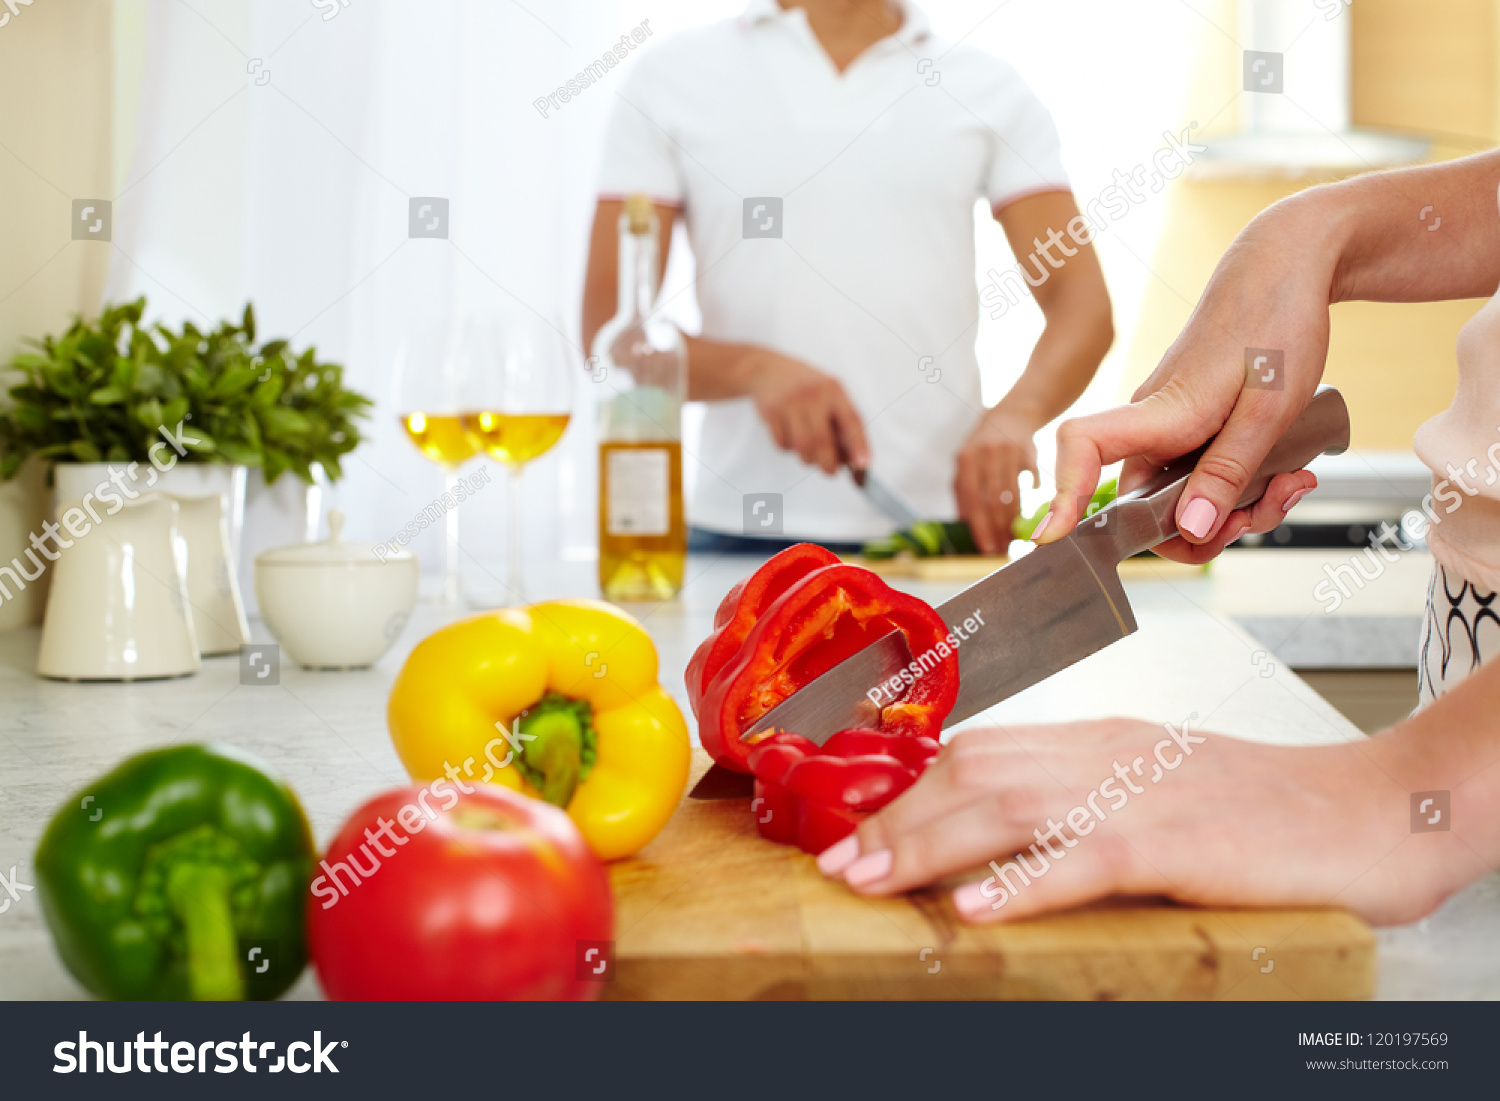 Close Up Of Young Female Cutting Red Pepper In The Kitchen